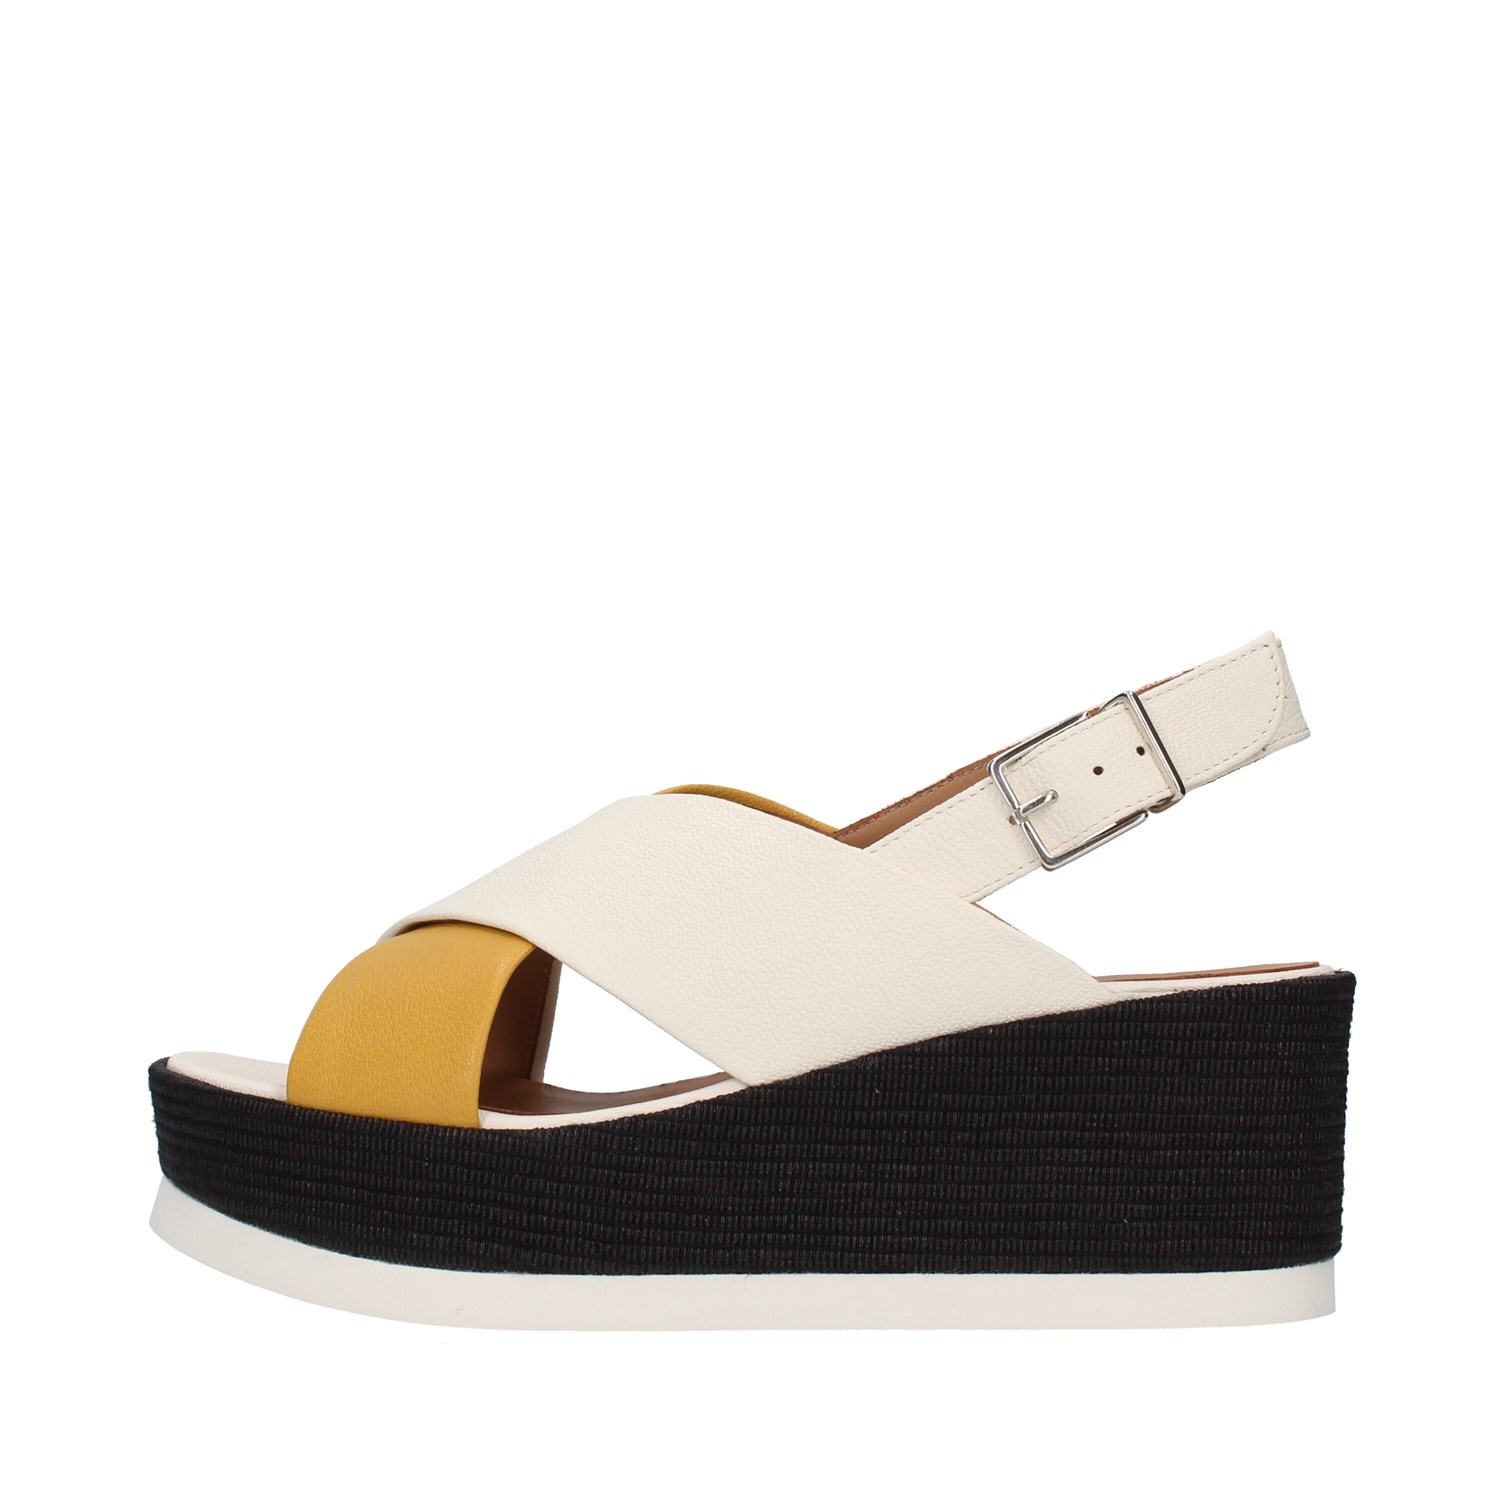 Tres Jolie Shoes Woman With wedge YELLOW 2801/JIL/MS